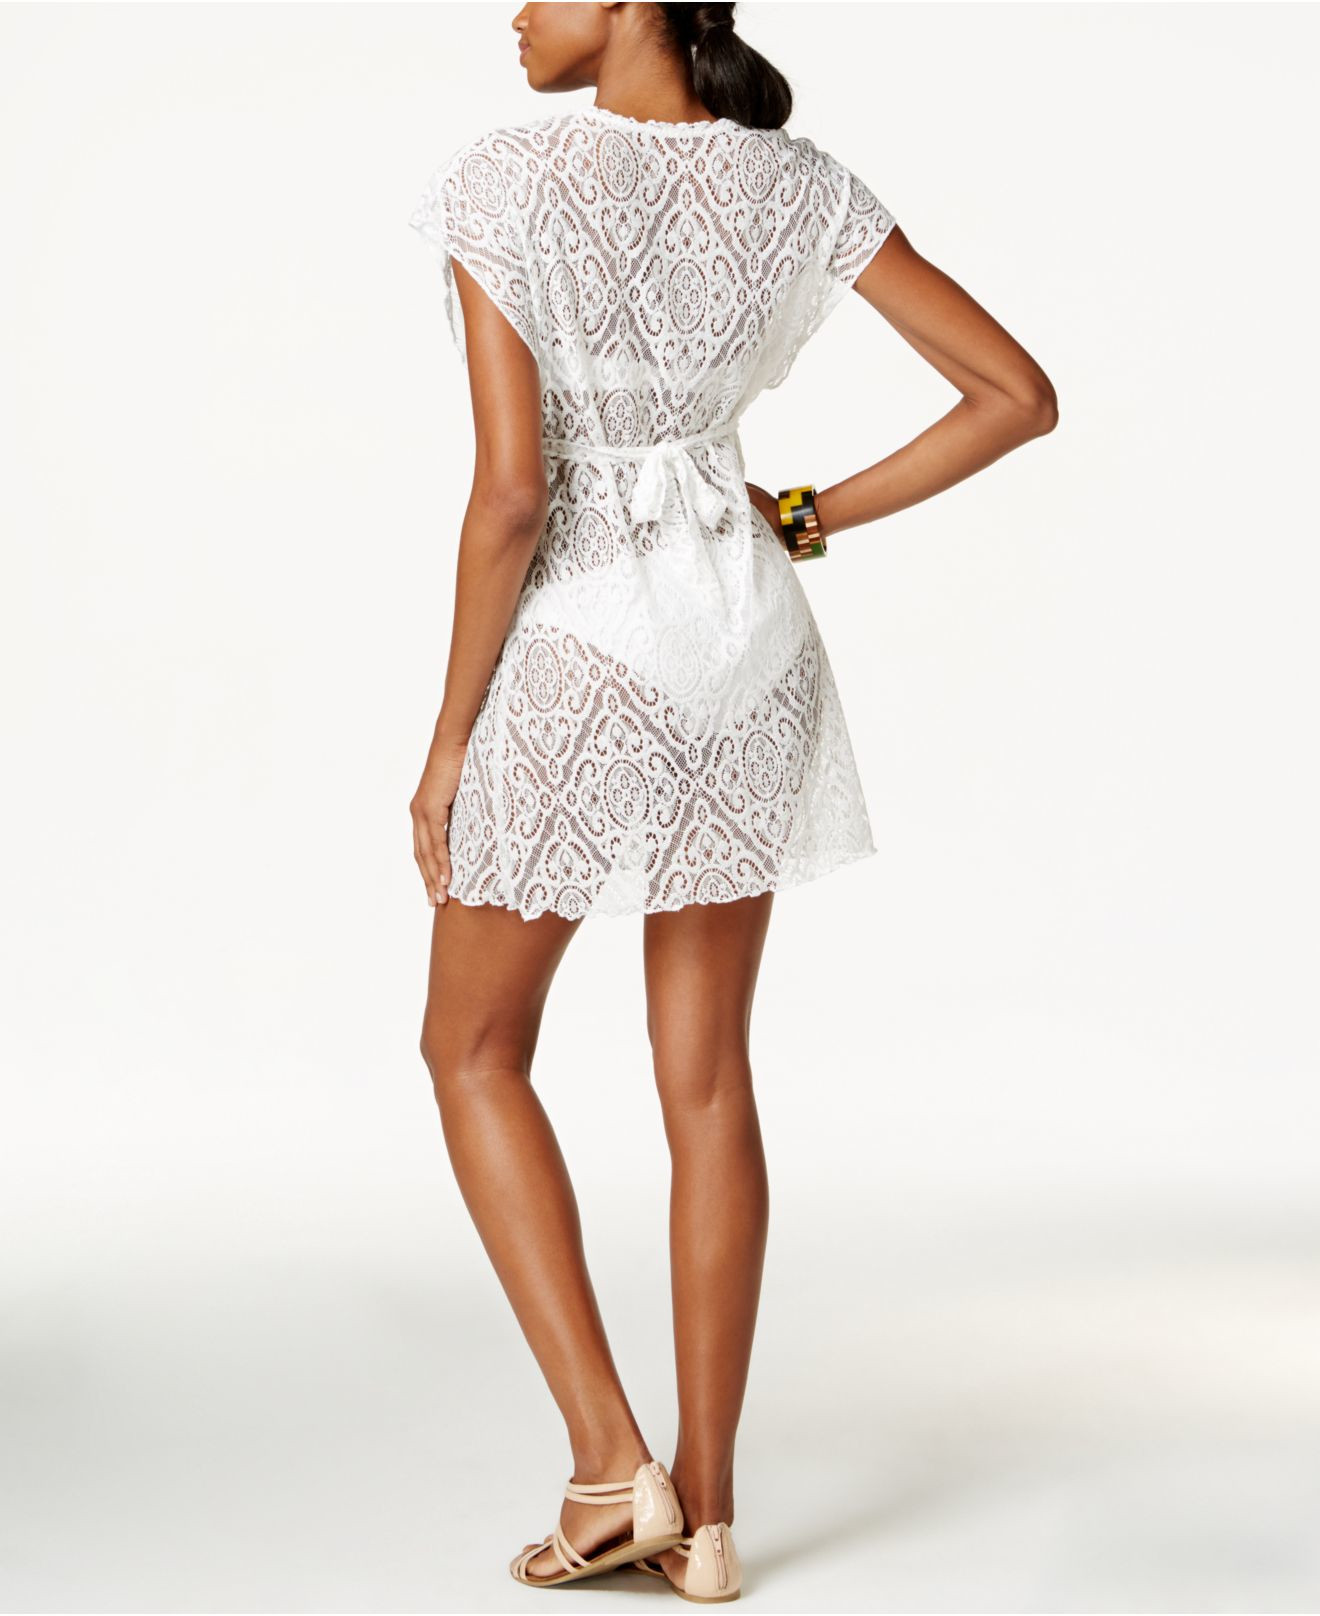 Crochet Cover Up Fresh Becca Crochet Lace Tunic Cover Up In White Of Adorable 40 Pictures Crochet Cover Up